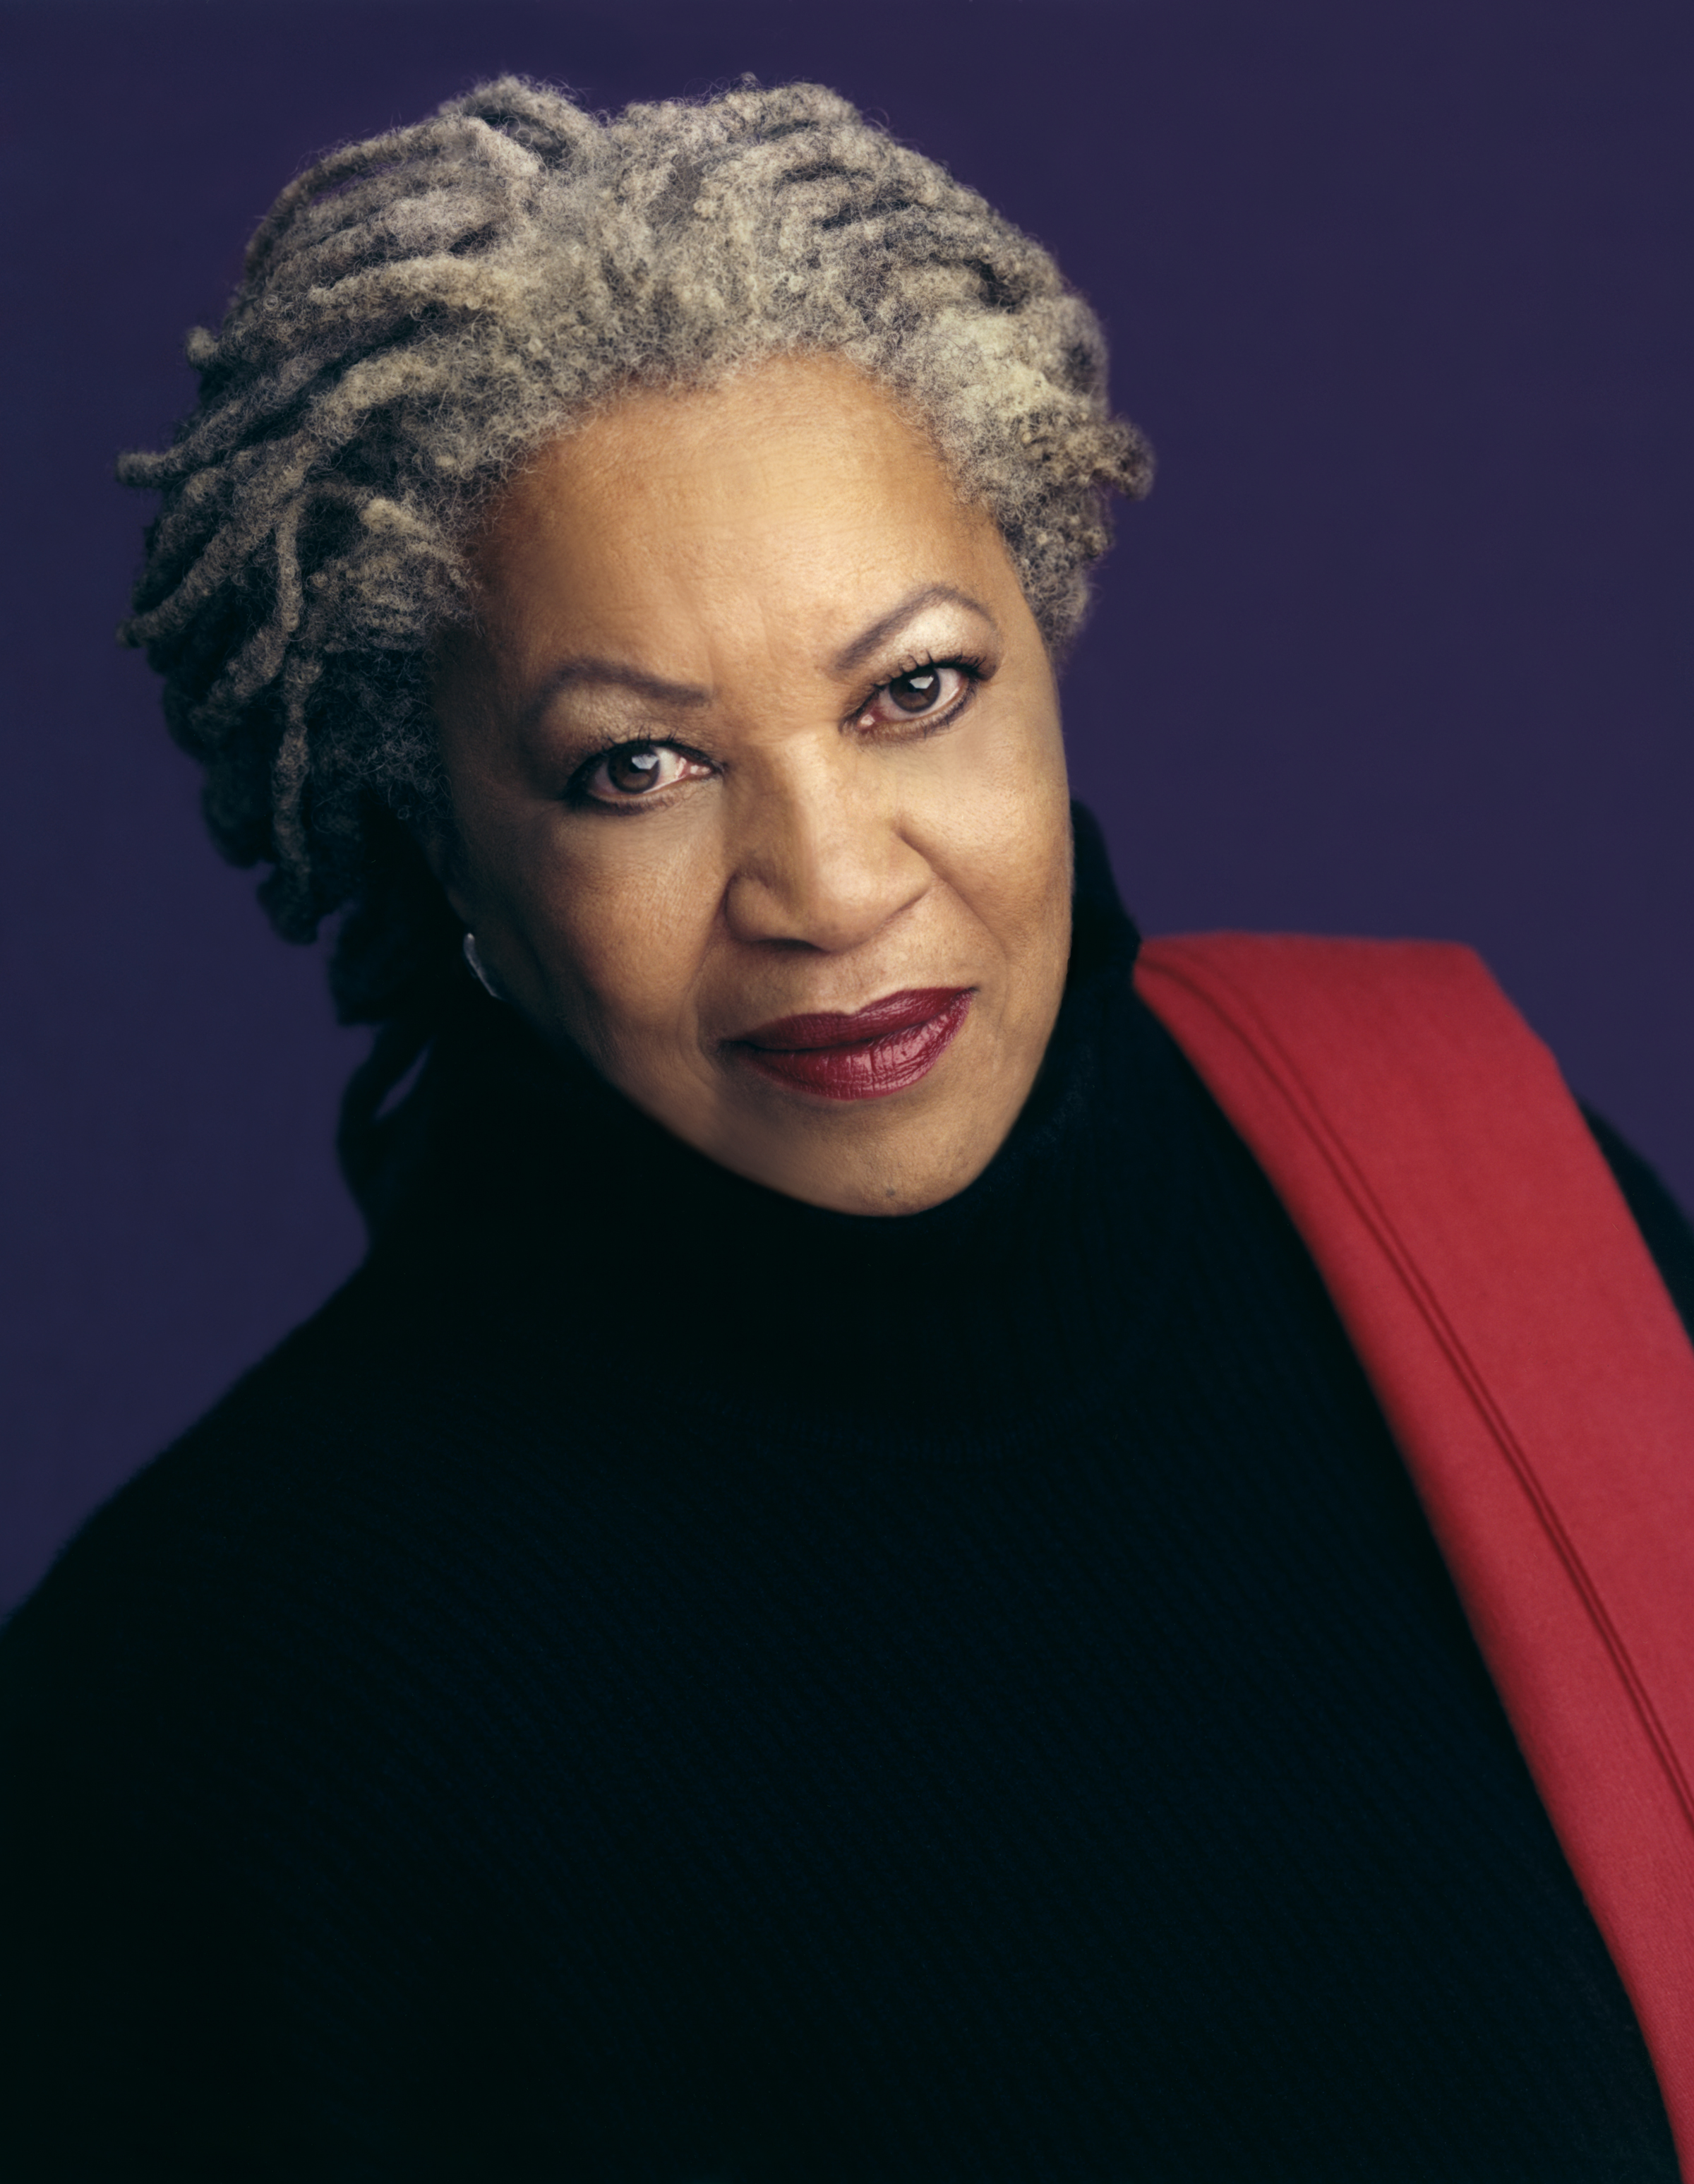 an analysis of the book jazz by toni morrison With the writing of jazz, morrison takes on new tasks and new risks jazz , for example, doesn't fit the classic novel format in terms of design, sentence structure, or narration just like the music this novel is named after, the work is improvisational.